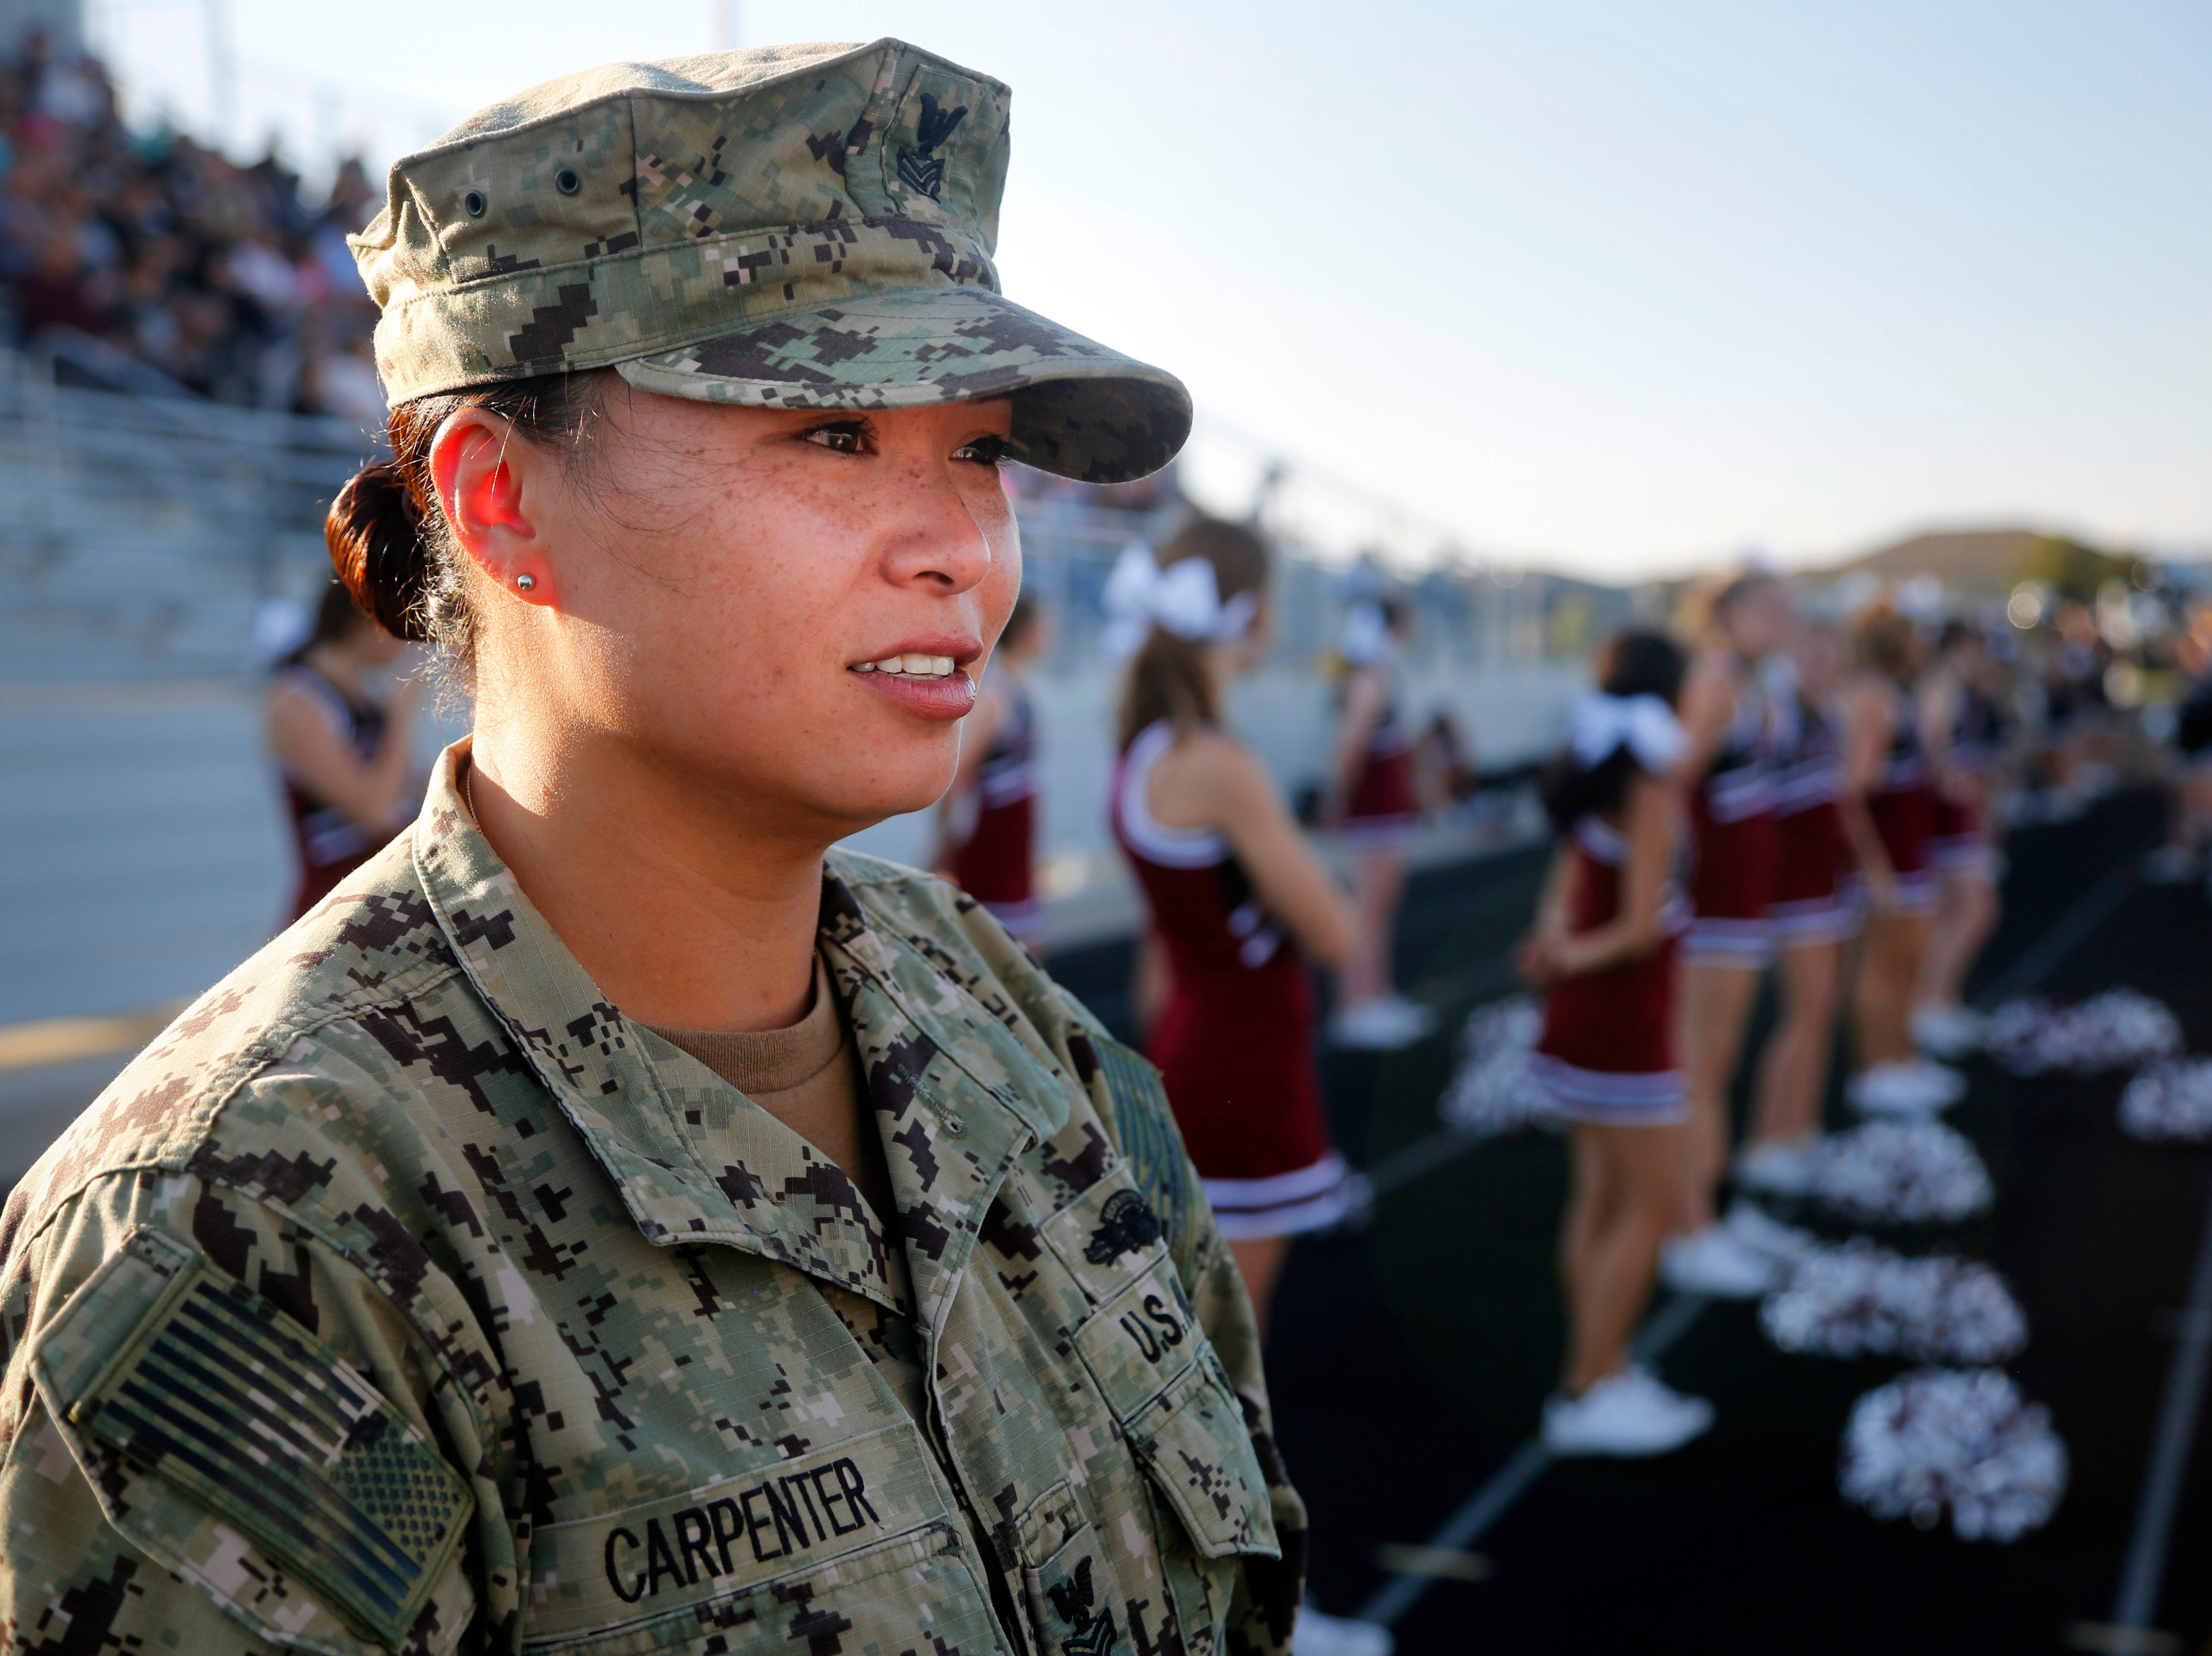 Navy Gunner Mate 1st Class Expeditionary Warfare Specialist Diem Carpenter stands on the sidelines after returning home after 10 months to surprise her son Gabriel Arrendondo, a member of Ankeny Centennial's sophomore football team at his game Sept. 14, 2018.